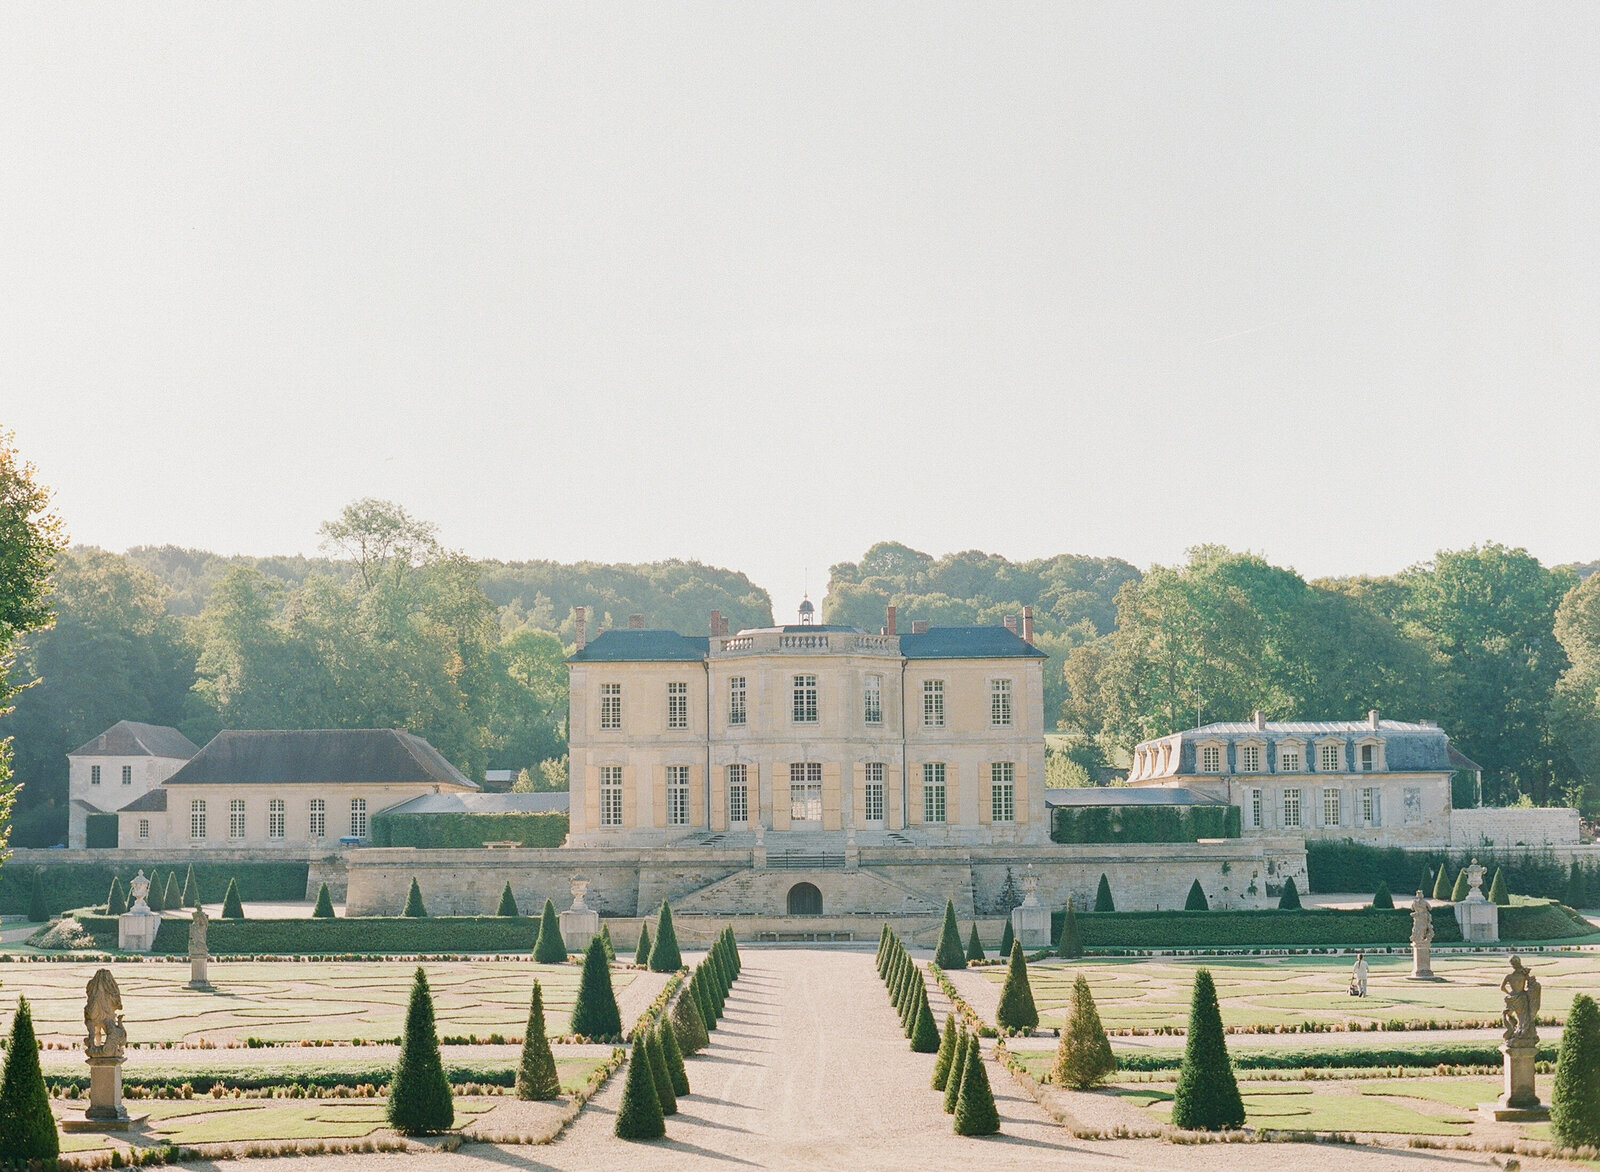 Chateau de Villette a wedding venue outside of Paris